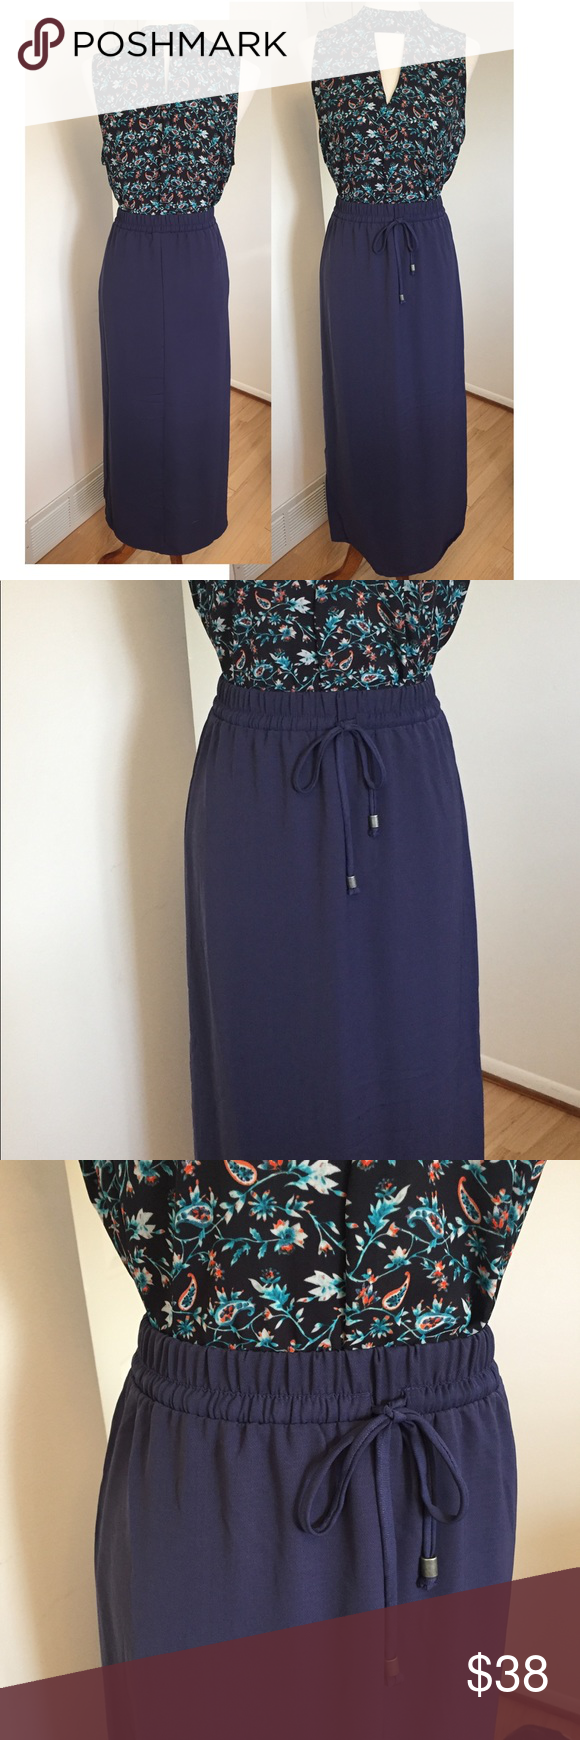 Fourteenth Place • Drawstring Maxi Skirt Drawstring waist maxi skirt. Beautiful blue color. Very soft and flowy. Can be paired causally with an everyday cotton t or with your favorite blouse for work. Side slit, fully lined. Definitely a go to piece during the transition into fall! New without tags. Fourteenth Place Skirts Maxi